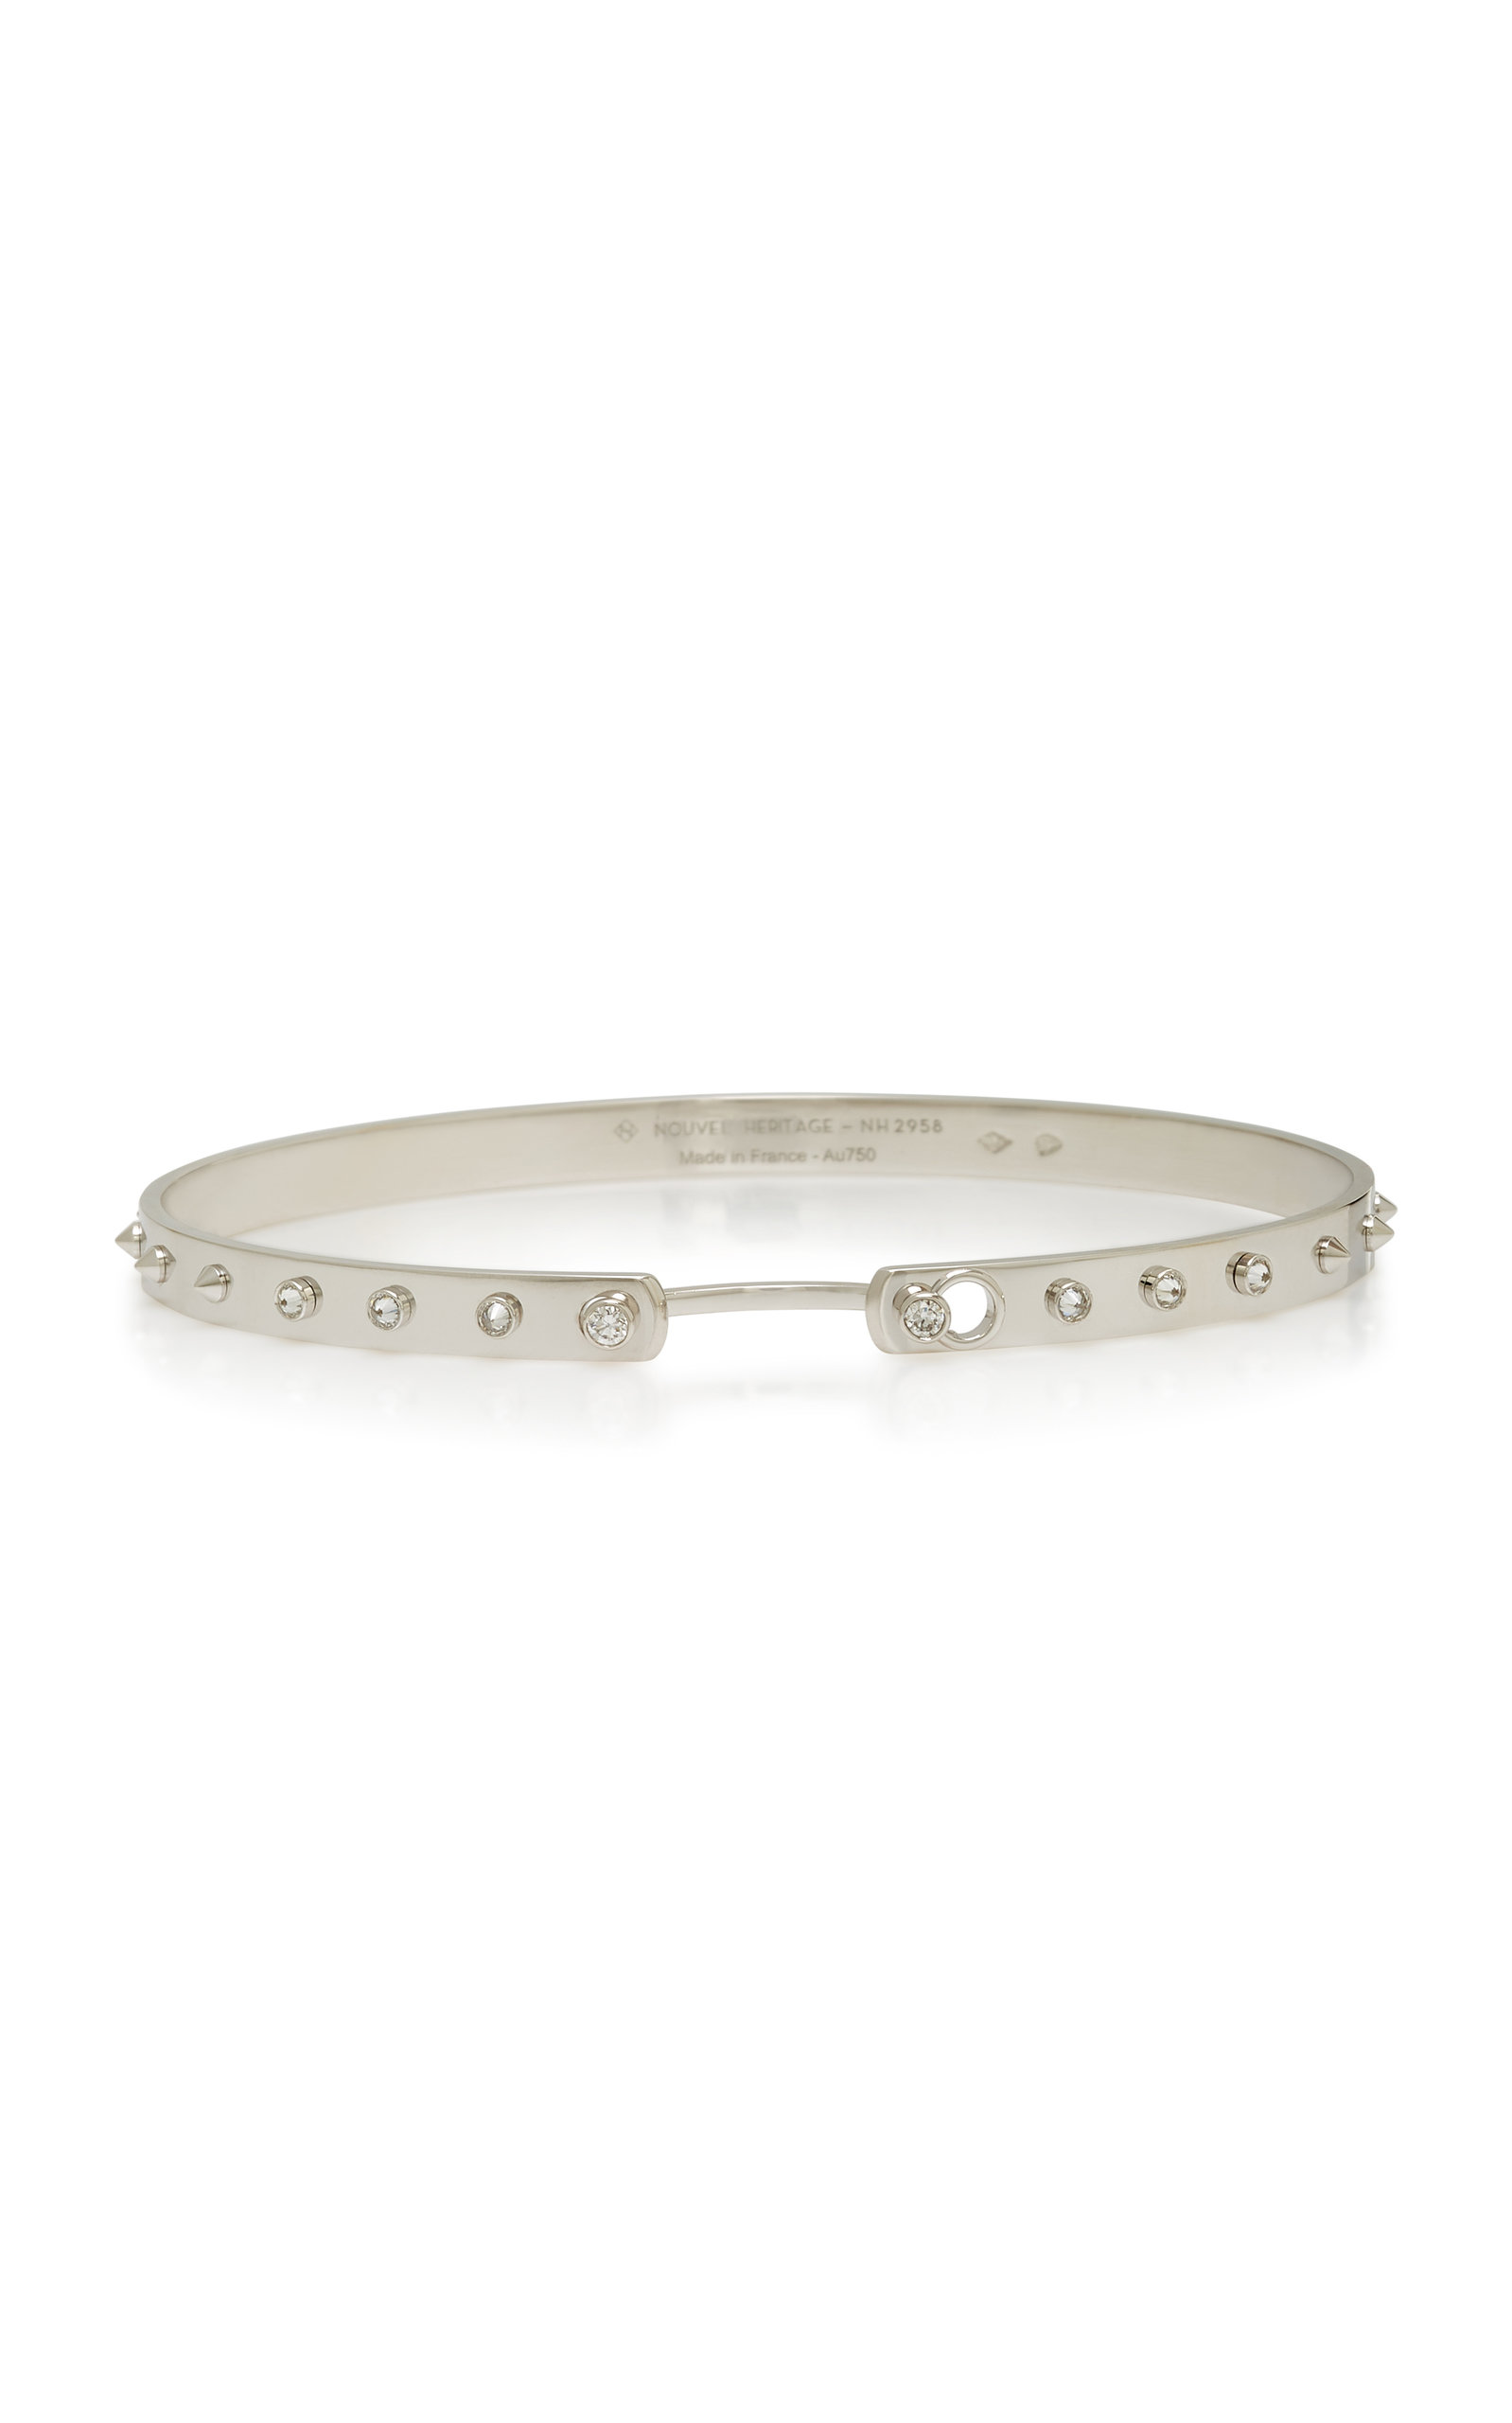 NOUVEL HERITAGE BRUNCH IN NY 18K WHITE GOLD DIAMOND BANGLE